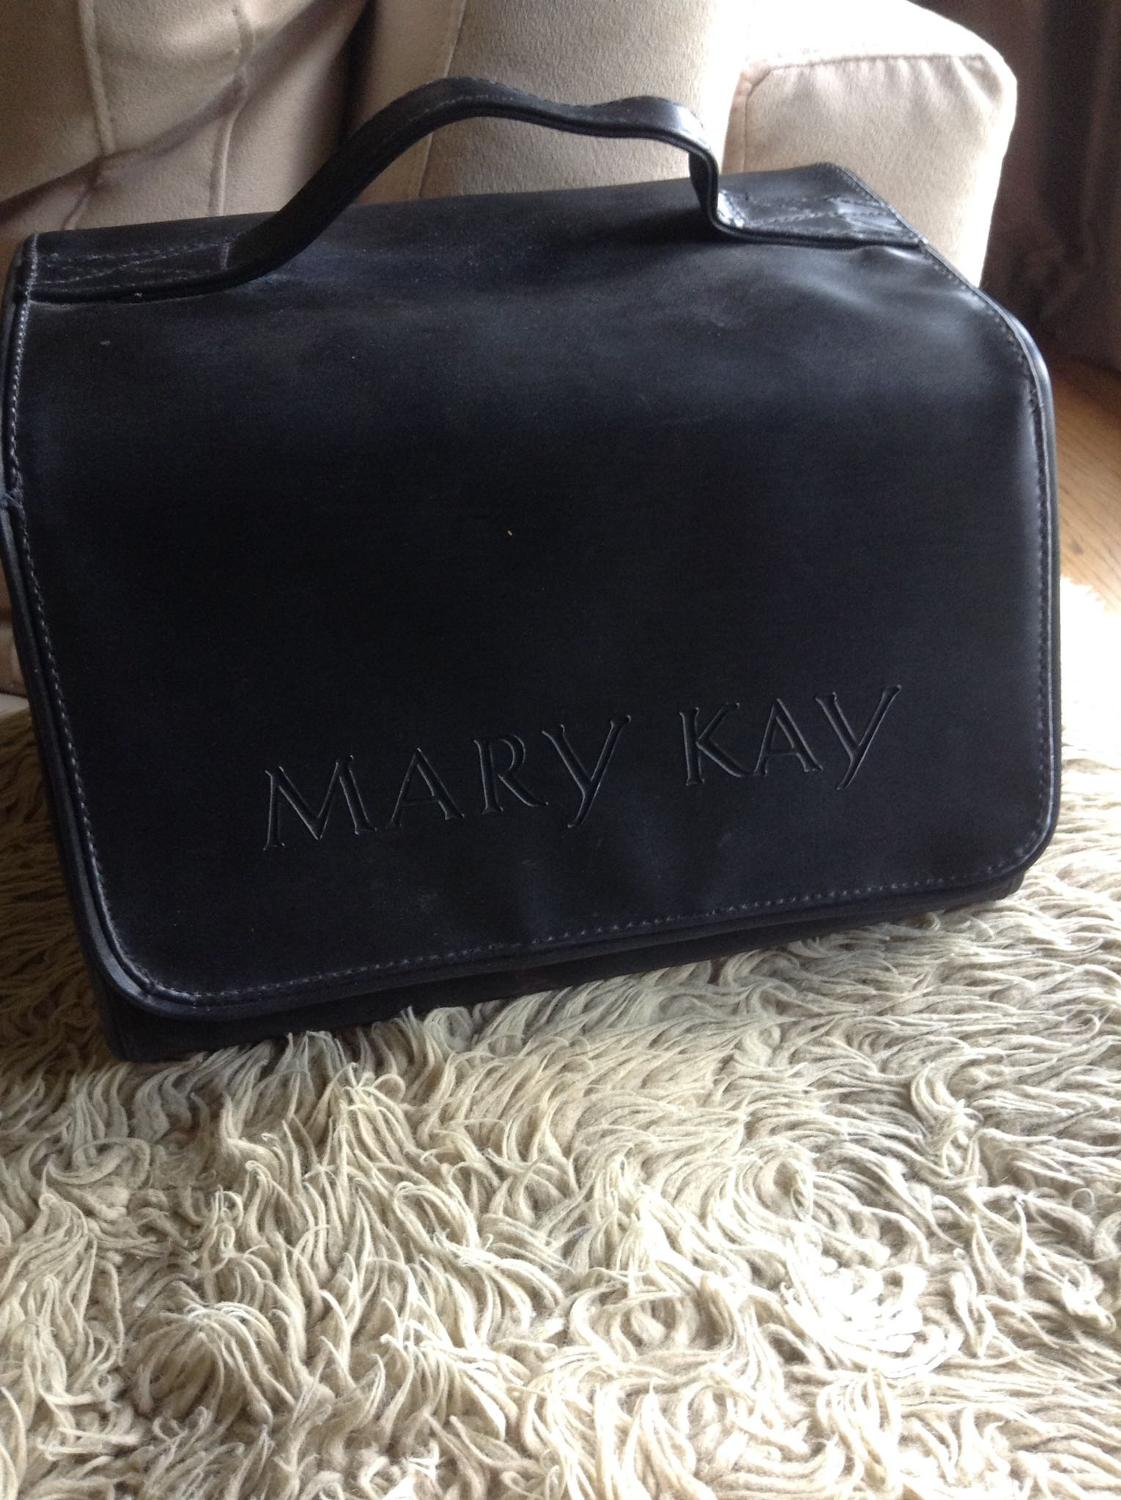 Best Mary Kay Hanging Travel Bag For Sale In Mountain Brook Alabama For 2020